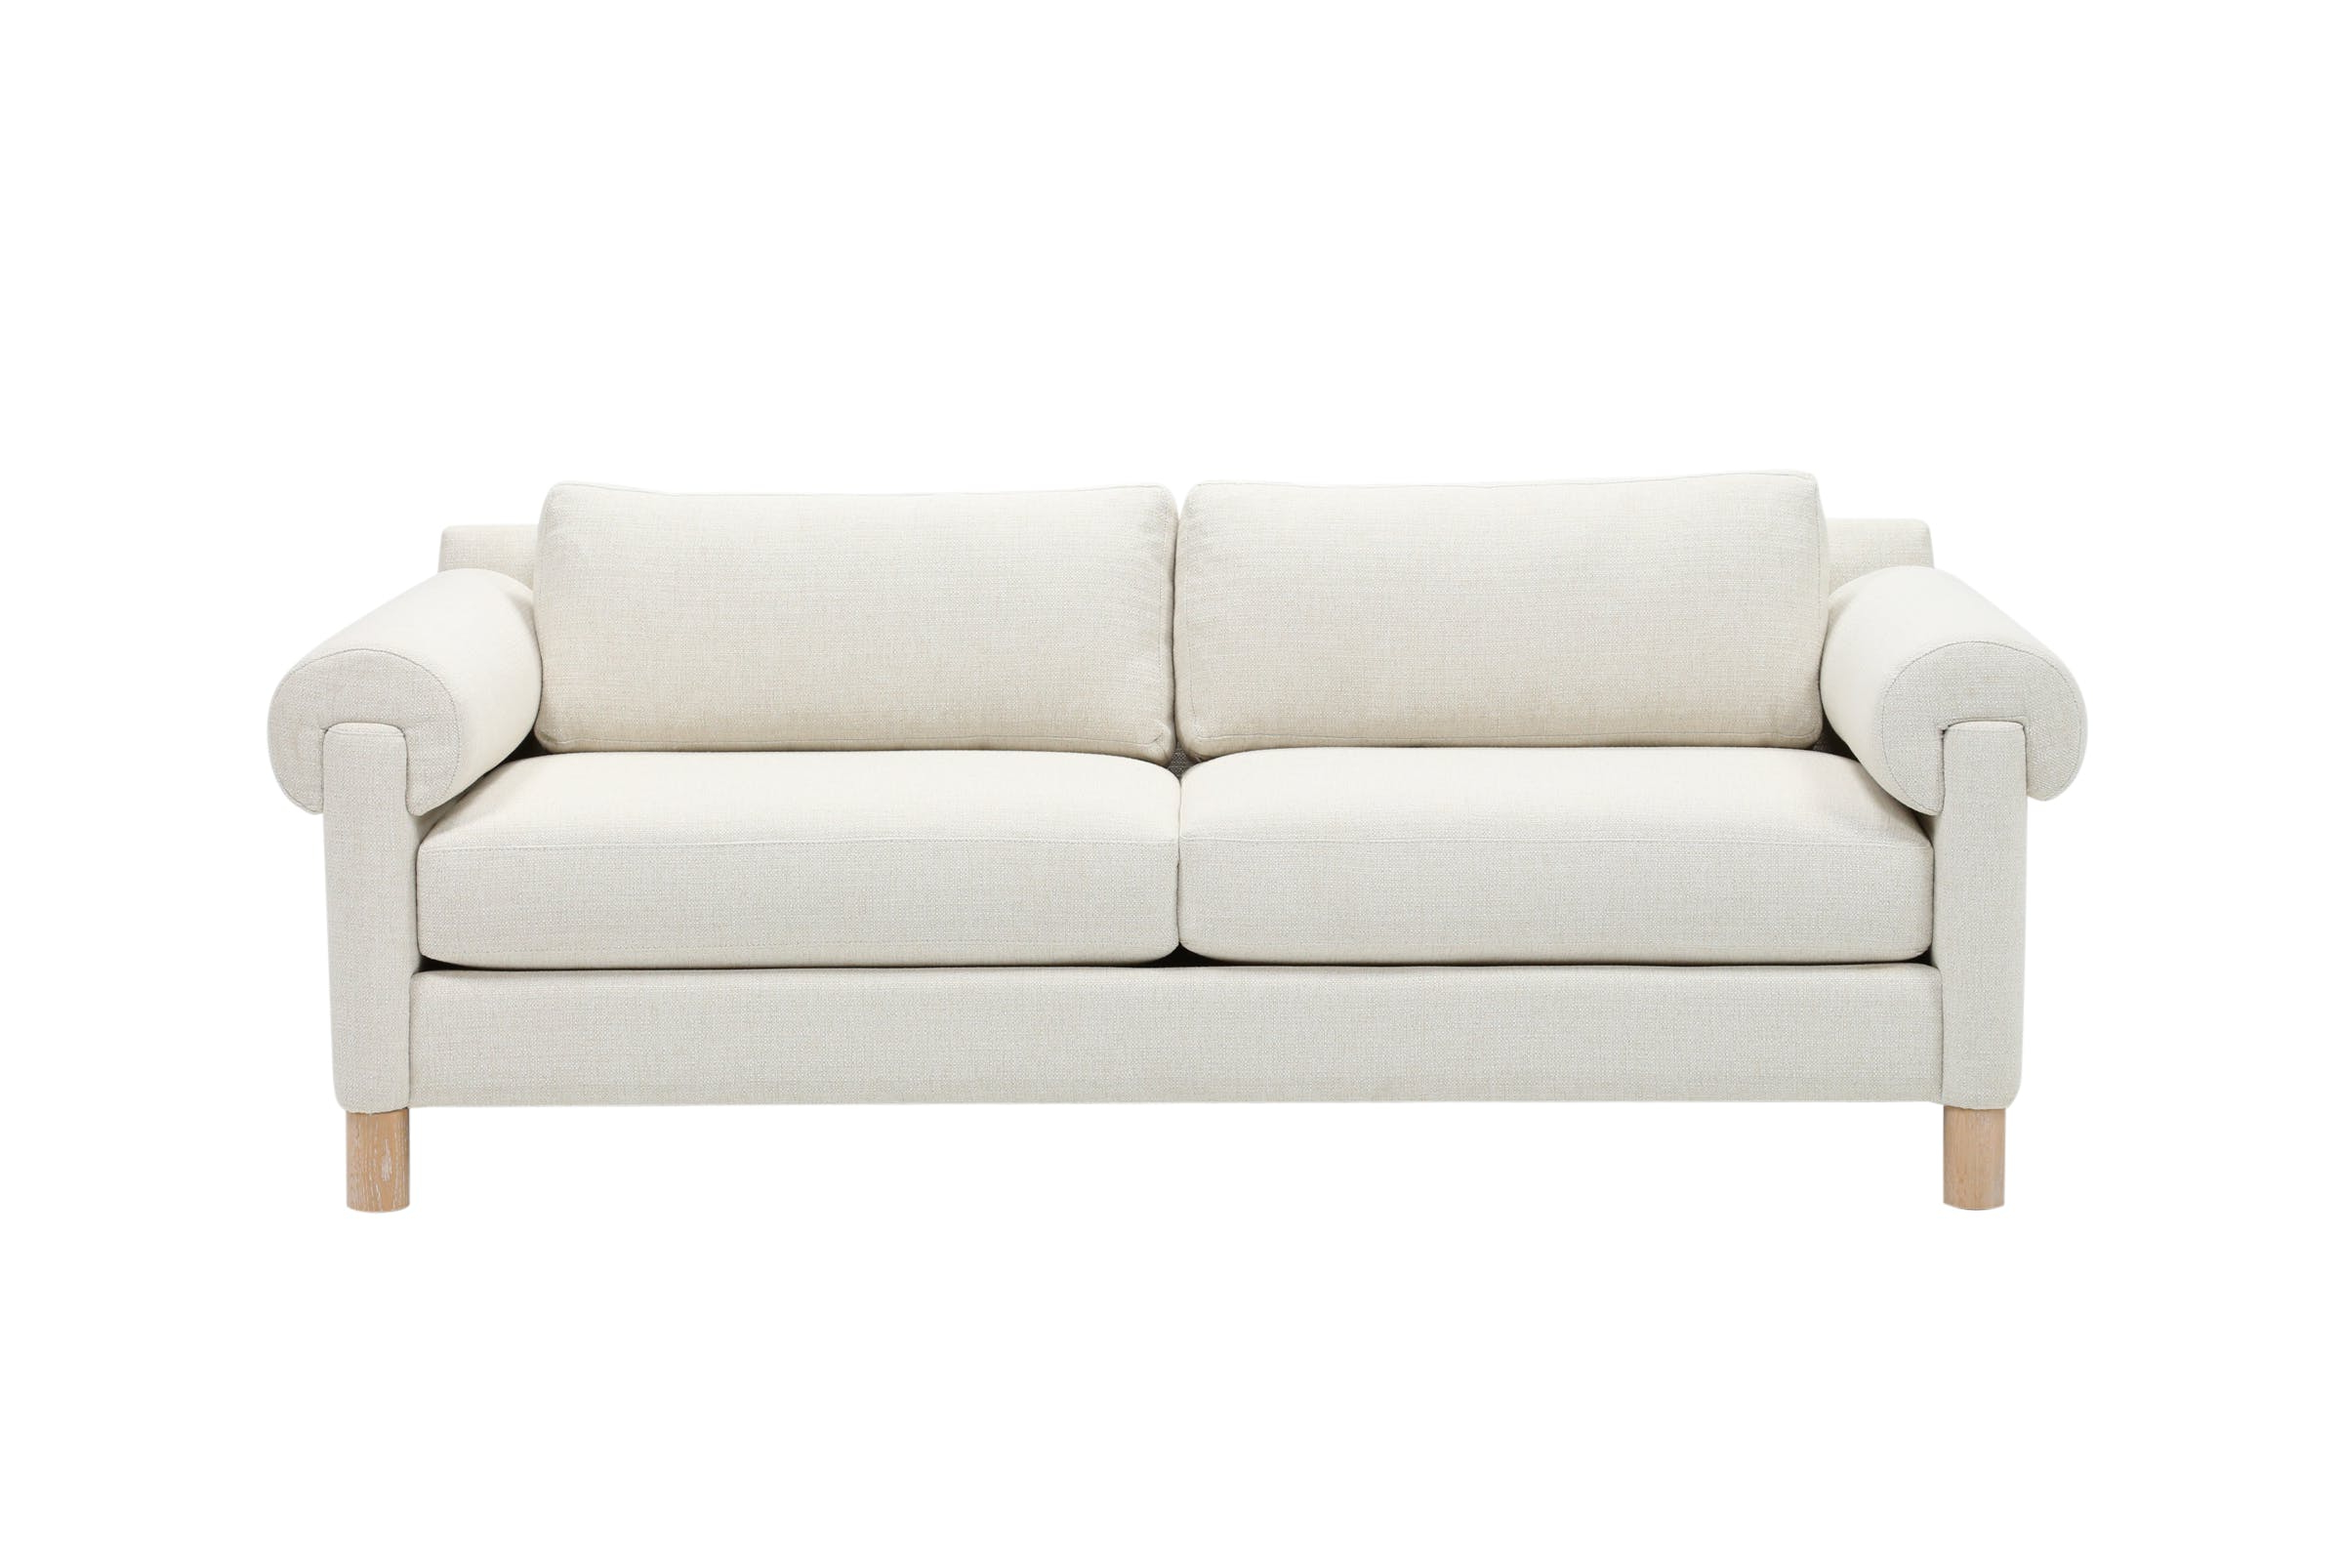 Matteo Arm Sofa Chairs By Nate Berkus And Jeremiah Brent Regarding Preferred Nate Berkus Just Launched A Home Collection With Hubby Jeremiah (View 5 of 20)